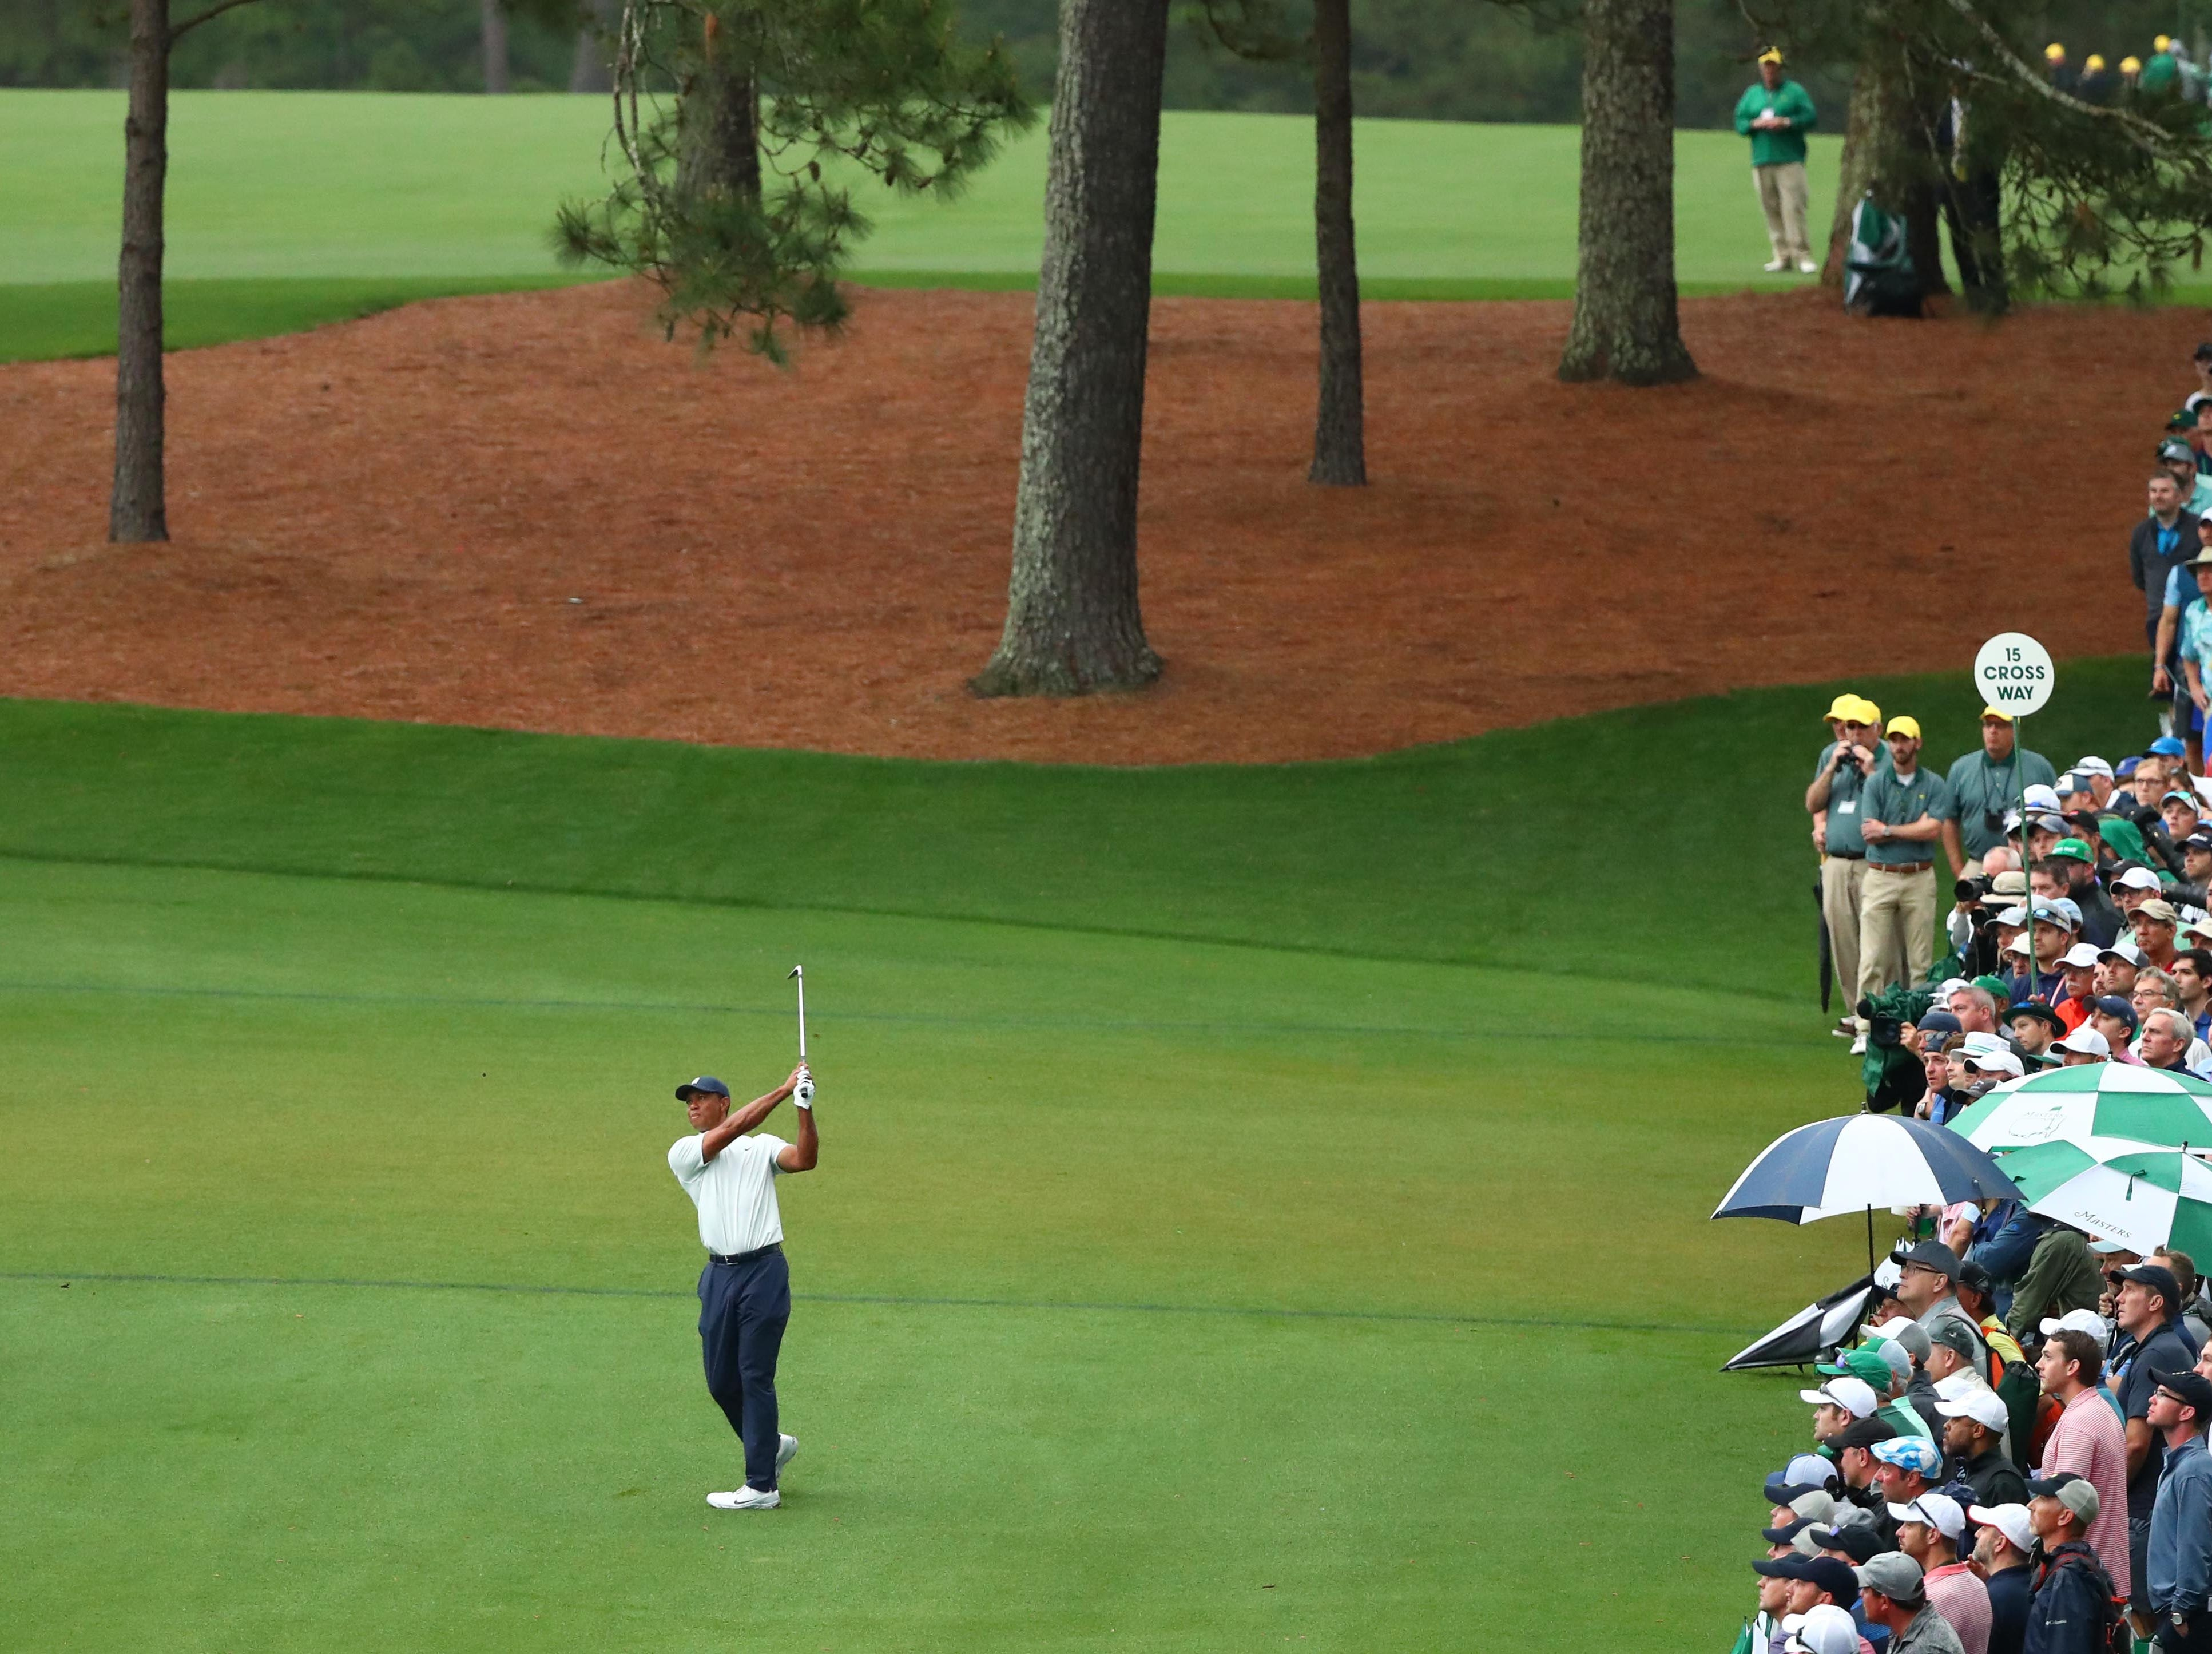 Apr 12, 2019; Augusta, GA, USA; Tiger Woods hits from the fairway on the 15th hole during the second round of The Masters golf tournament at Augusta National Golf Club. Mandatory Credit: Rob Schumacher-USA TODAY Sports